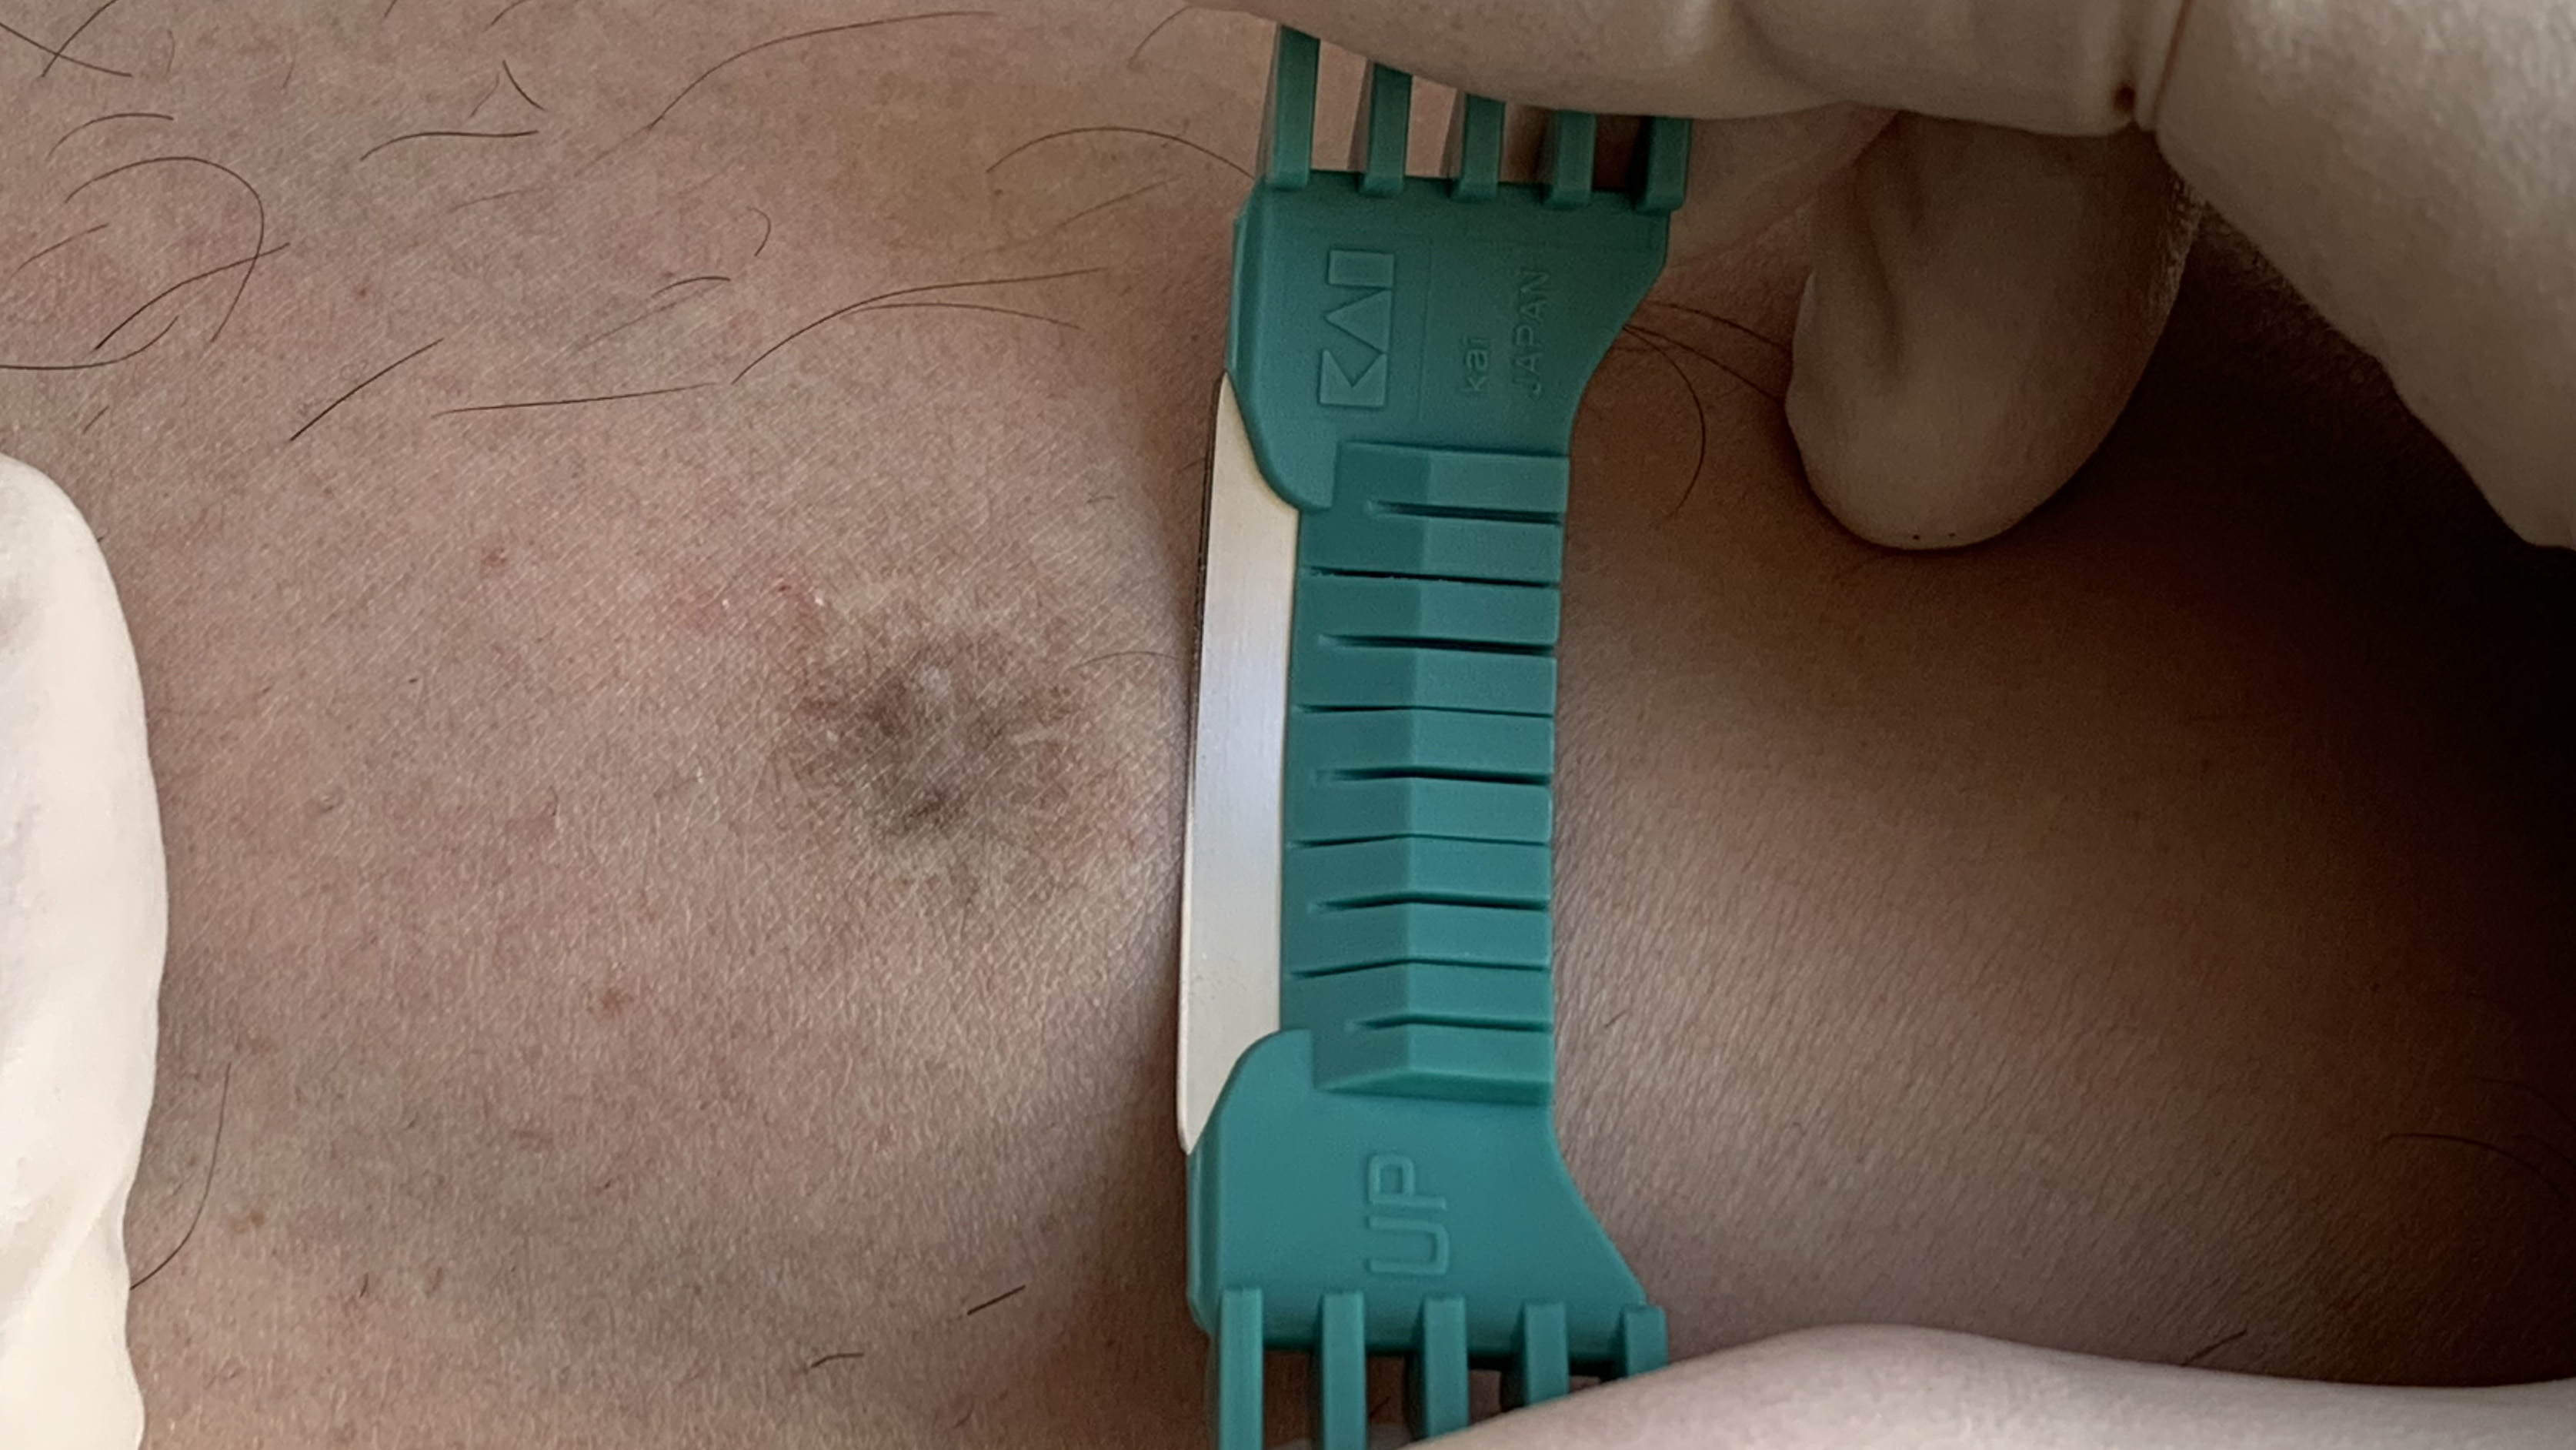 Shave biopsy and excision